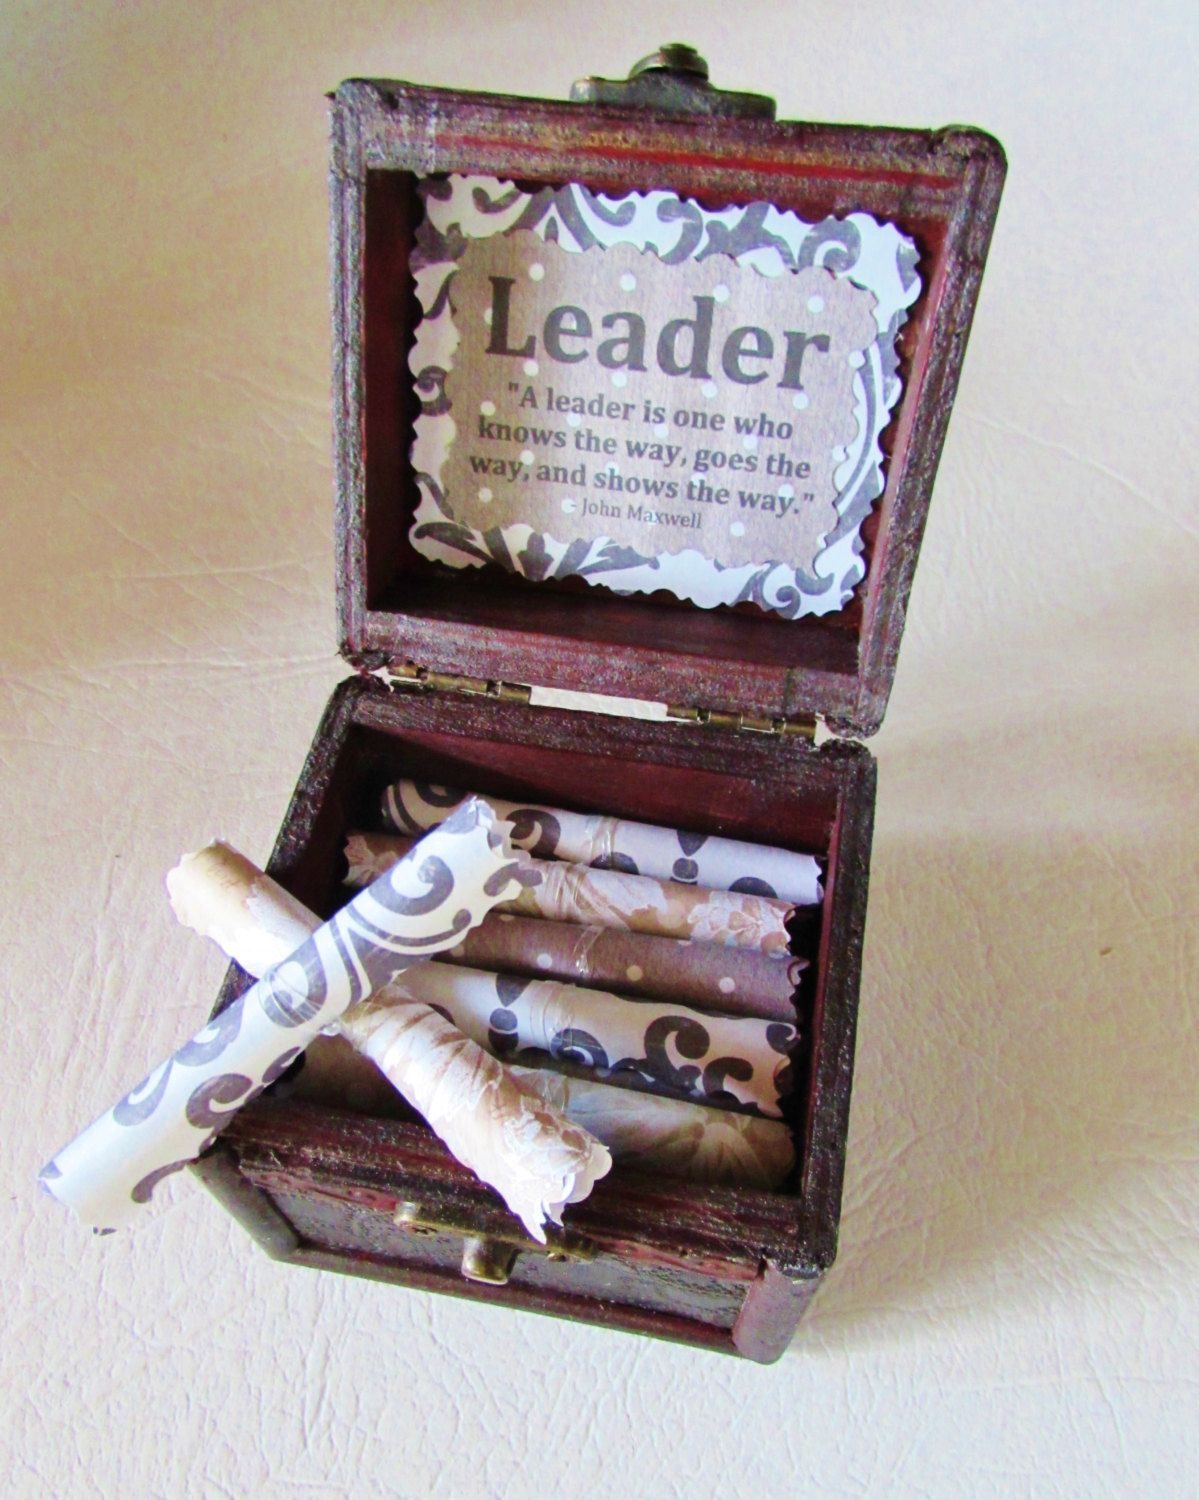 Leadership Gift For Boss Wood Chest With Inspirational Quotes About Unique Personalized Birthday Christmas Day